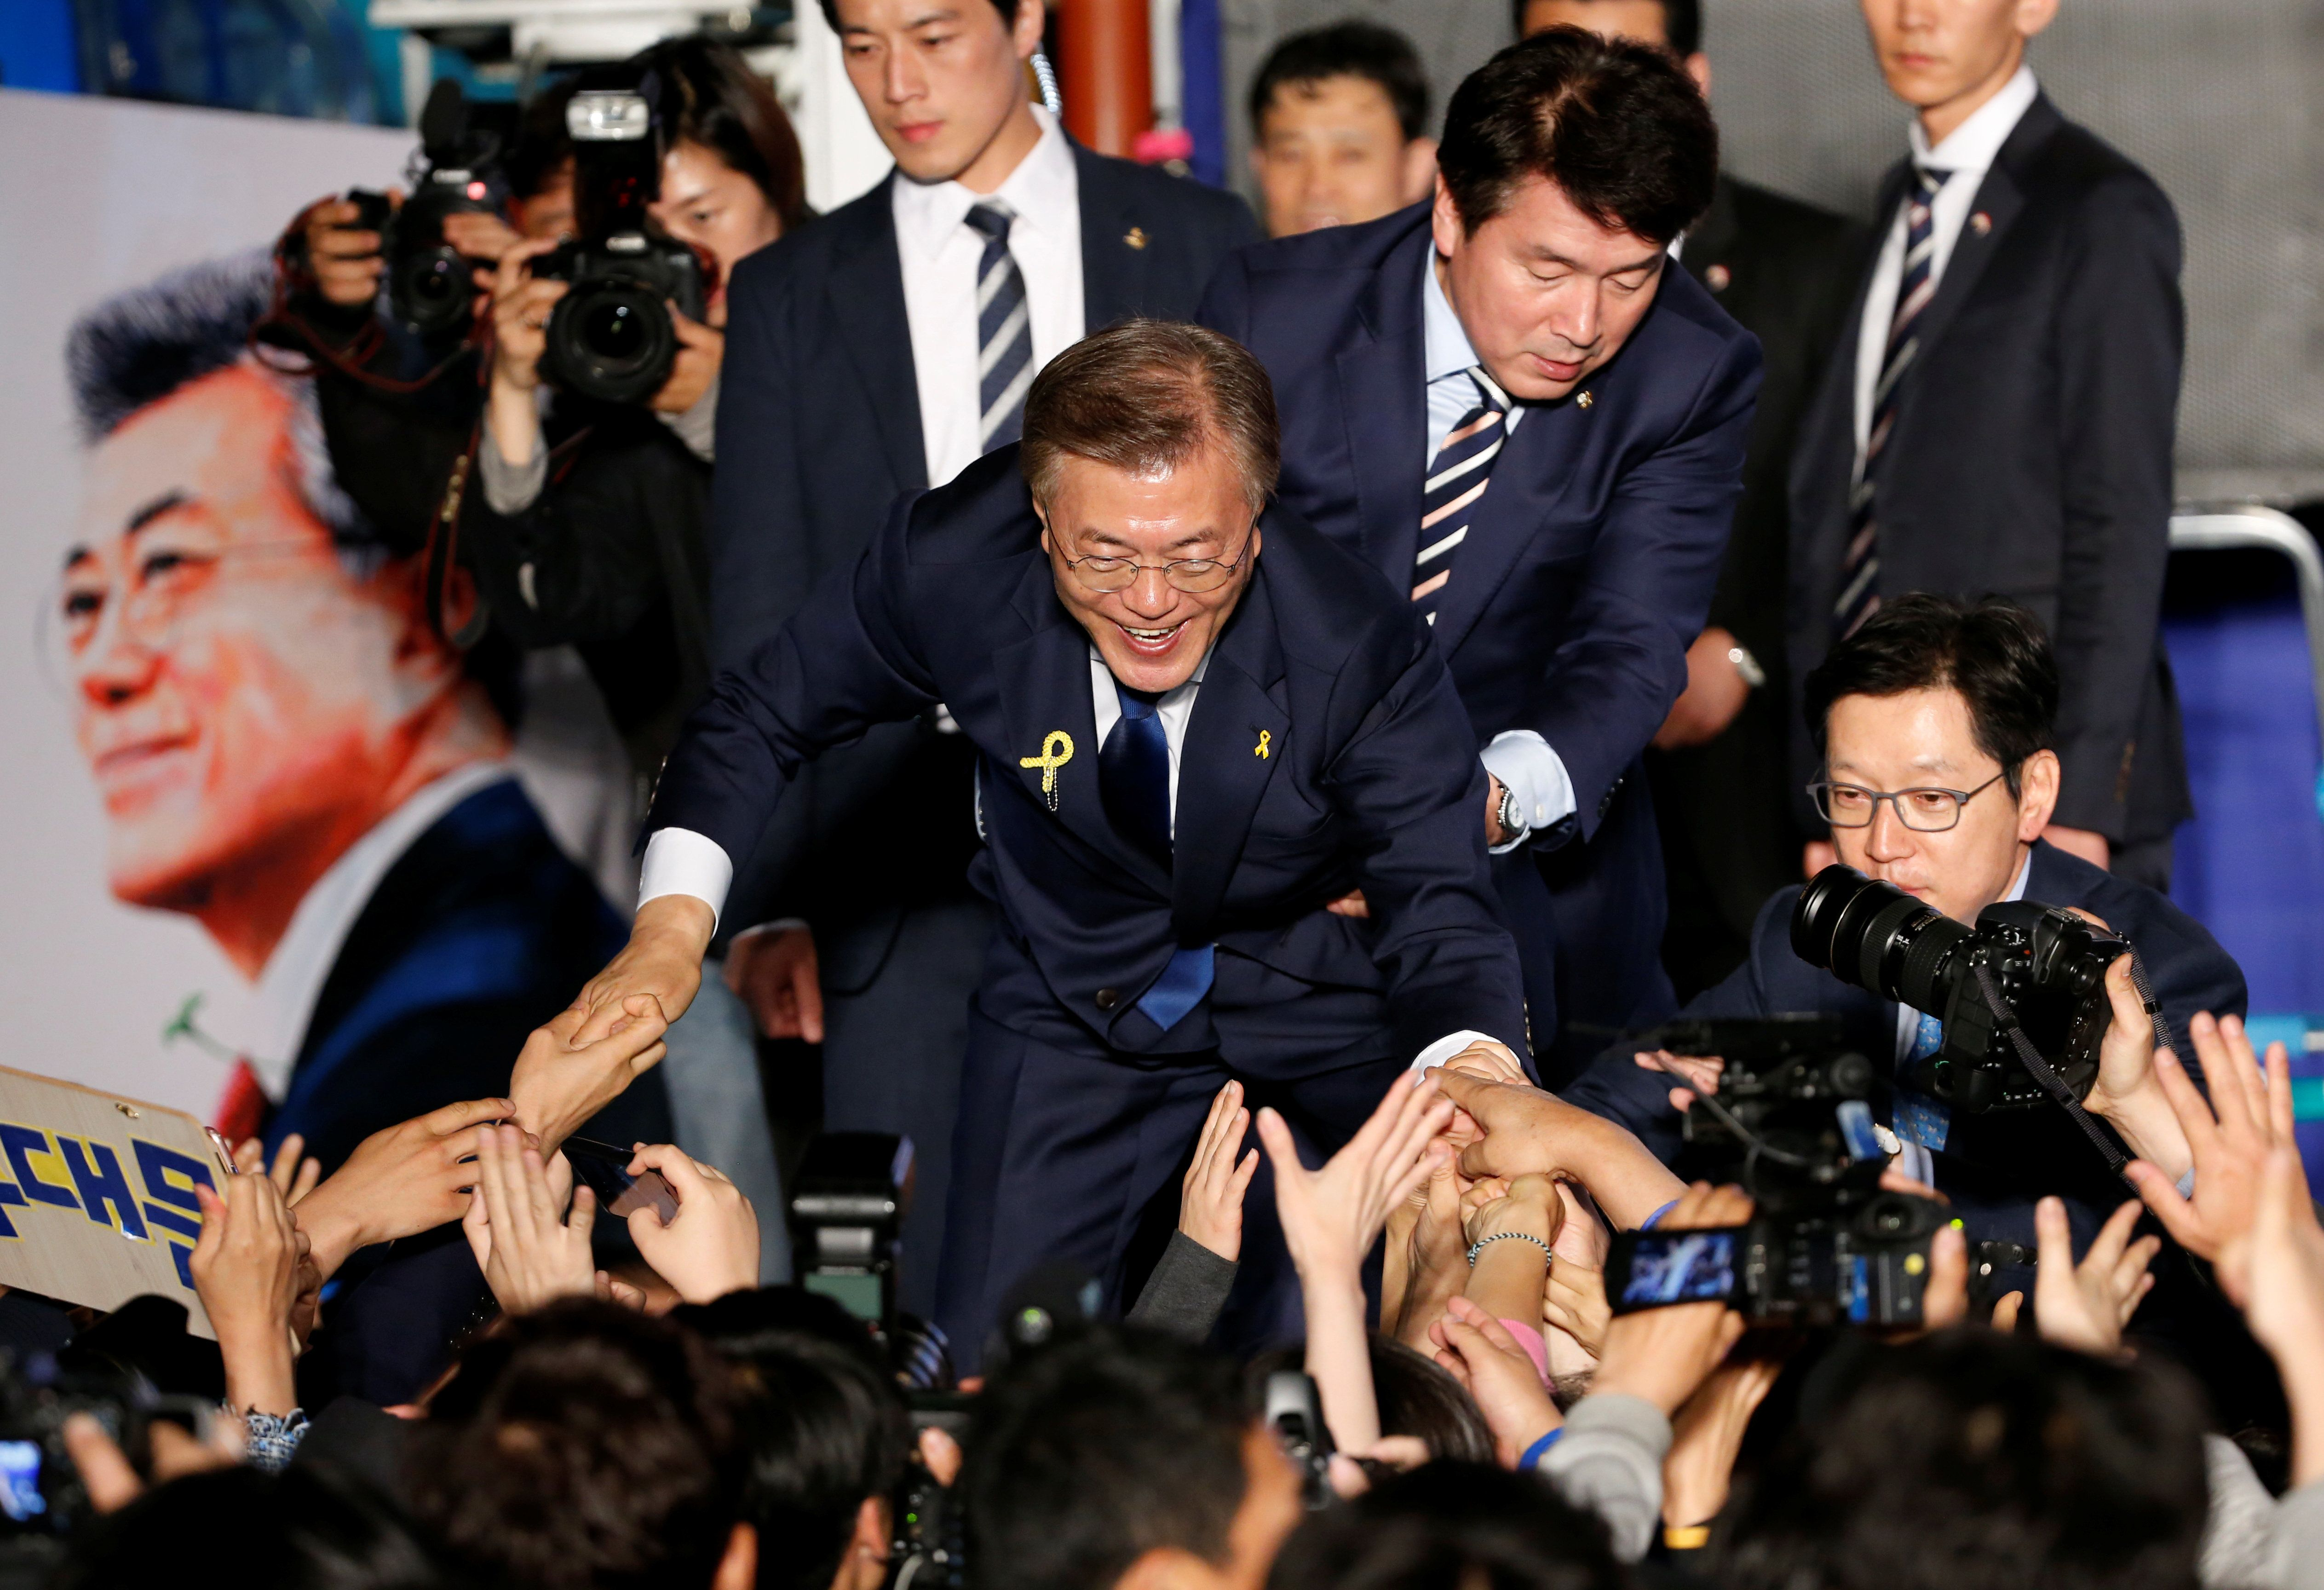 President Moon Jae-in reaches to the crowd as his now-famous bodyguard in the background looks as handsome as ever.